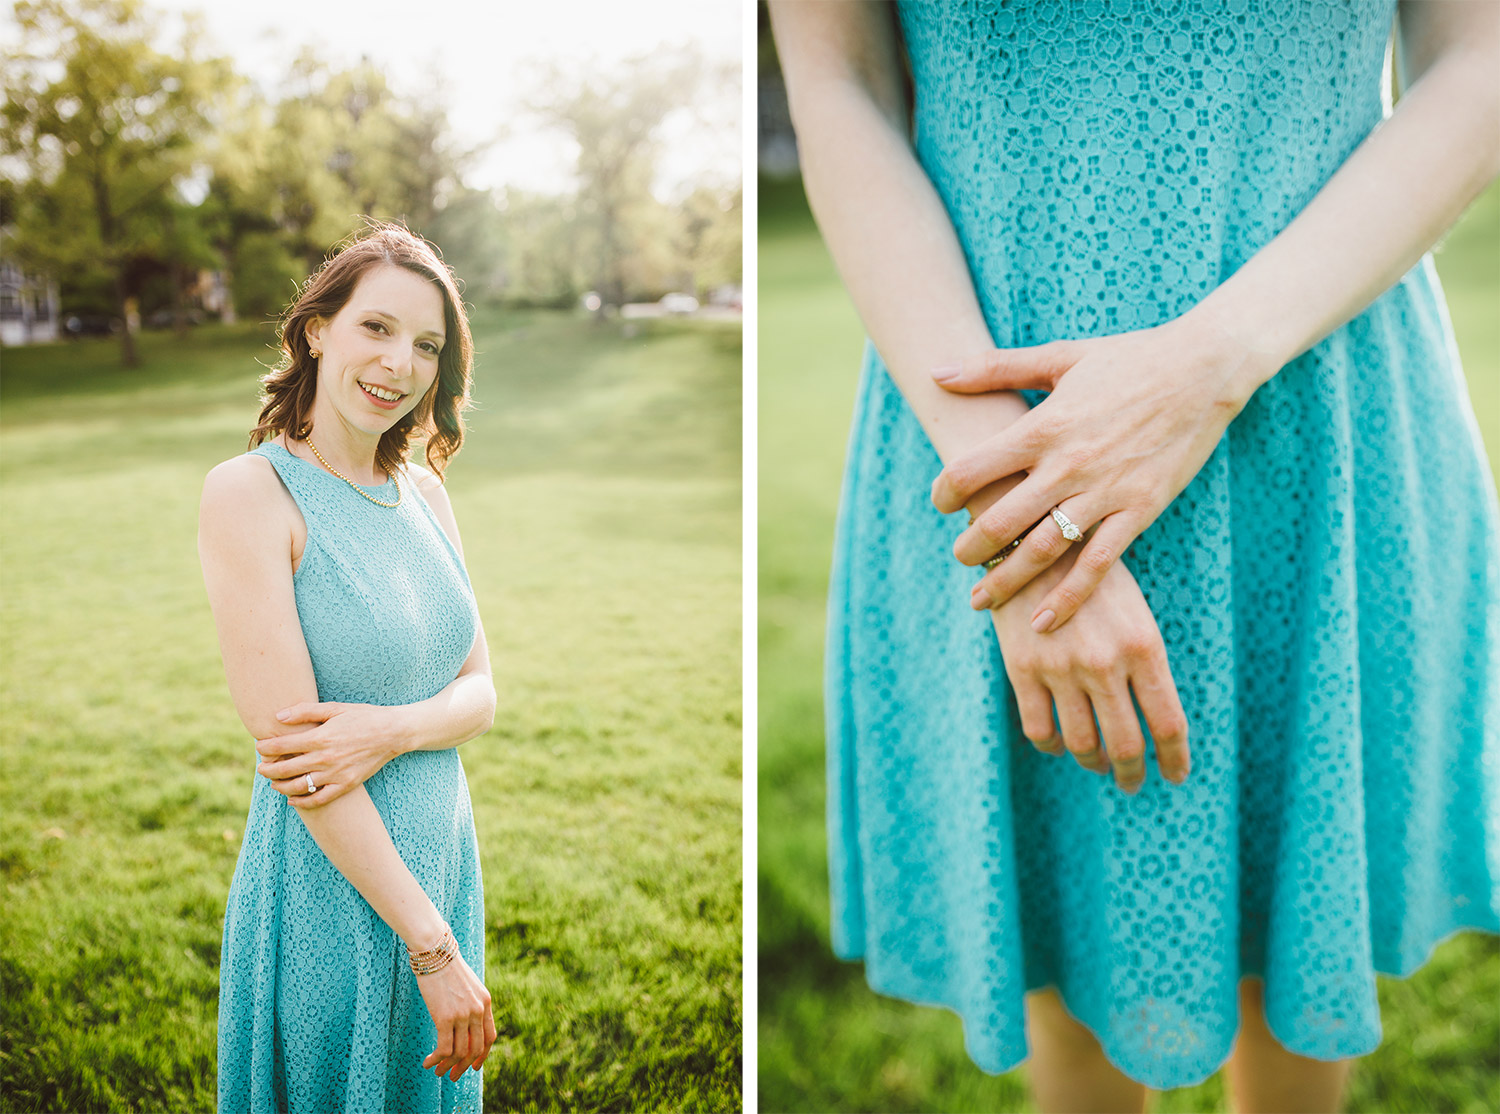 hasings-park-engagement-susanne-ken-pair02